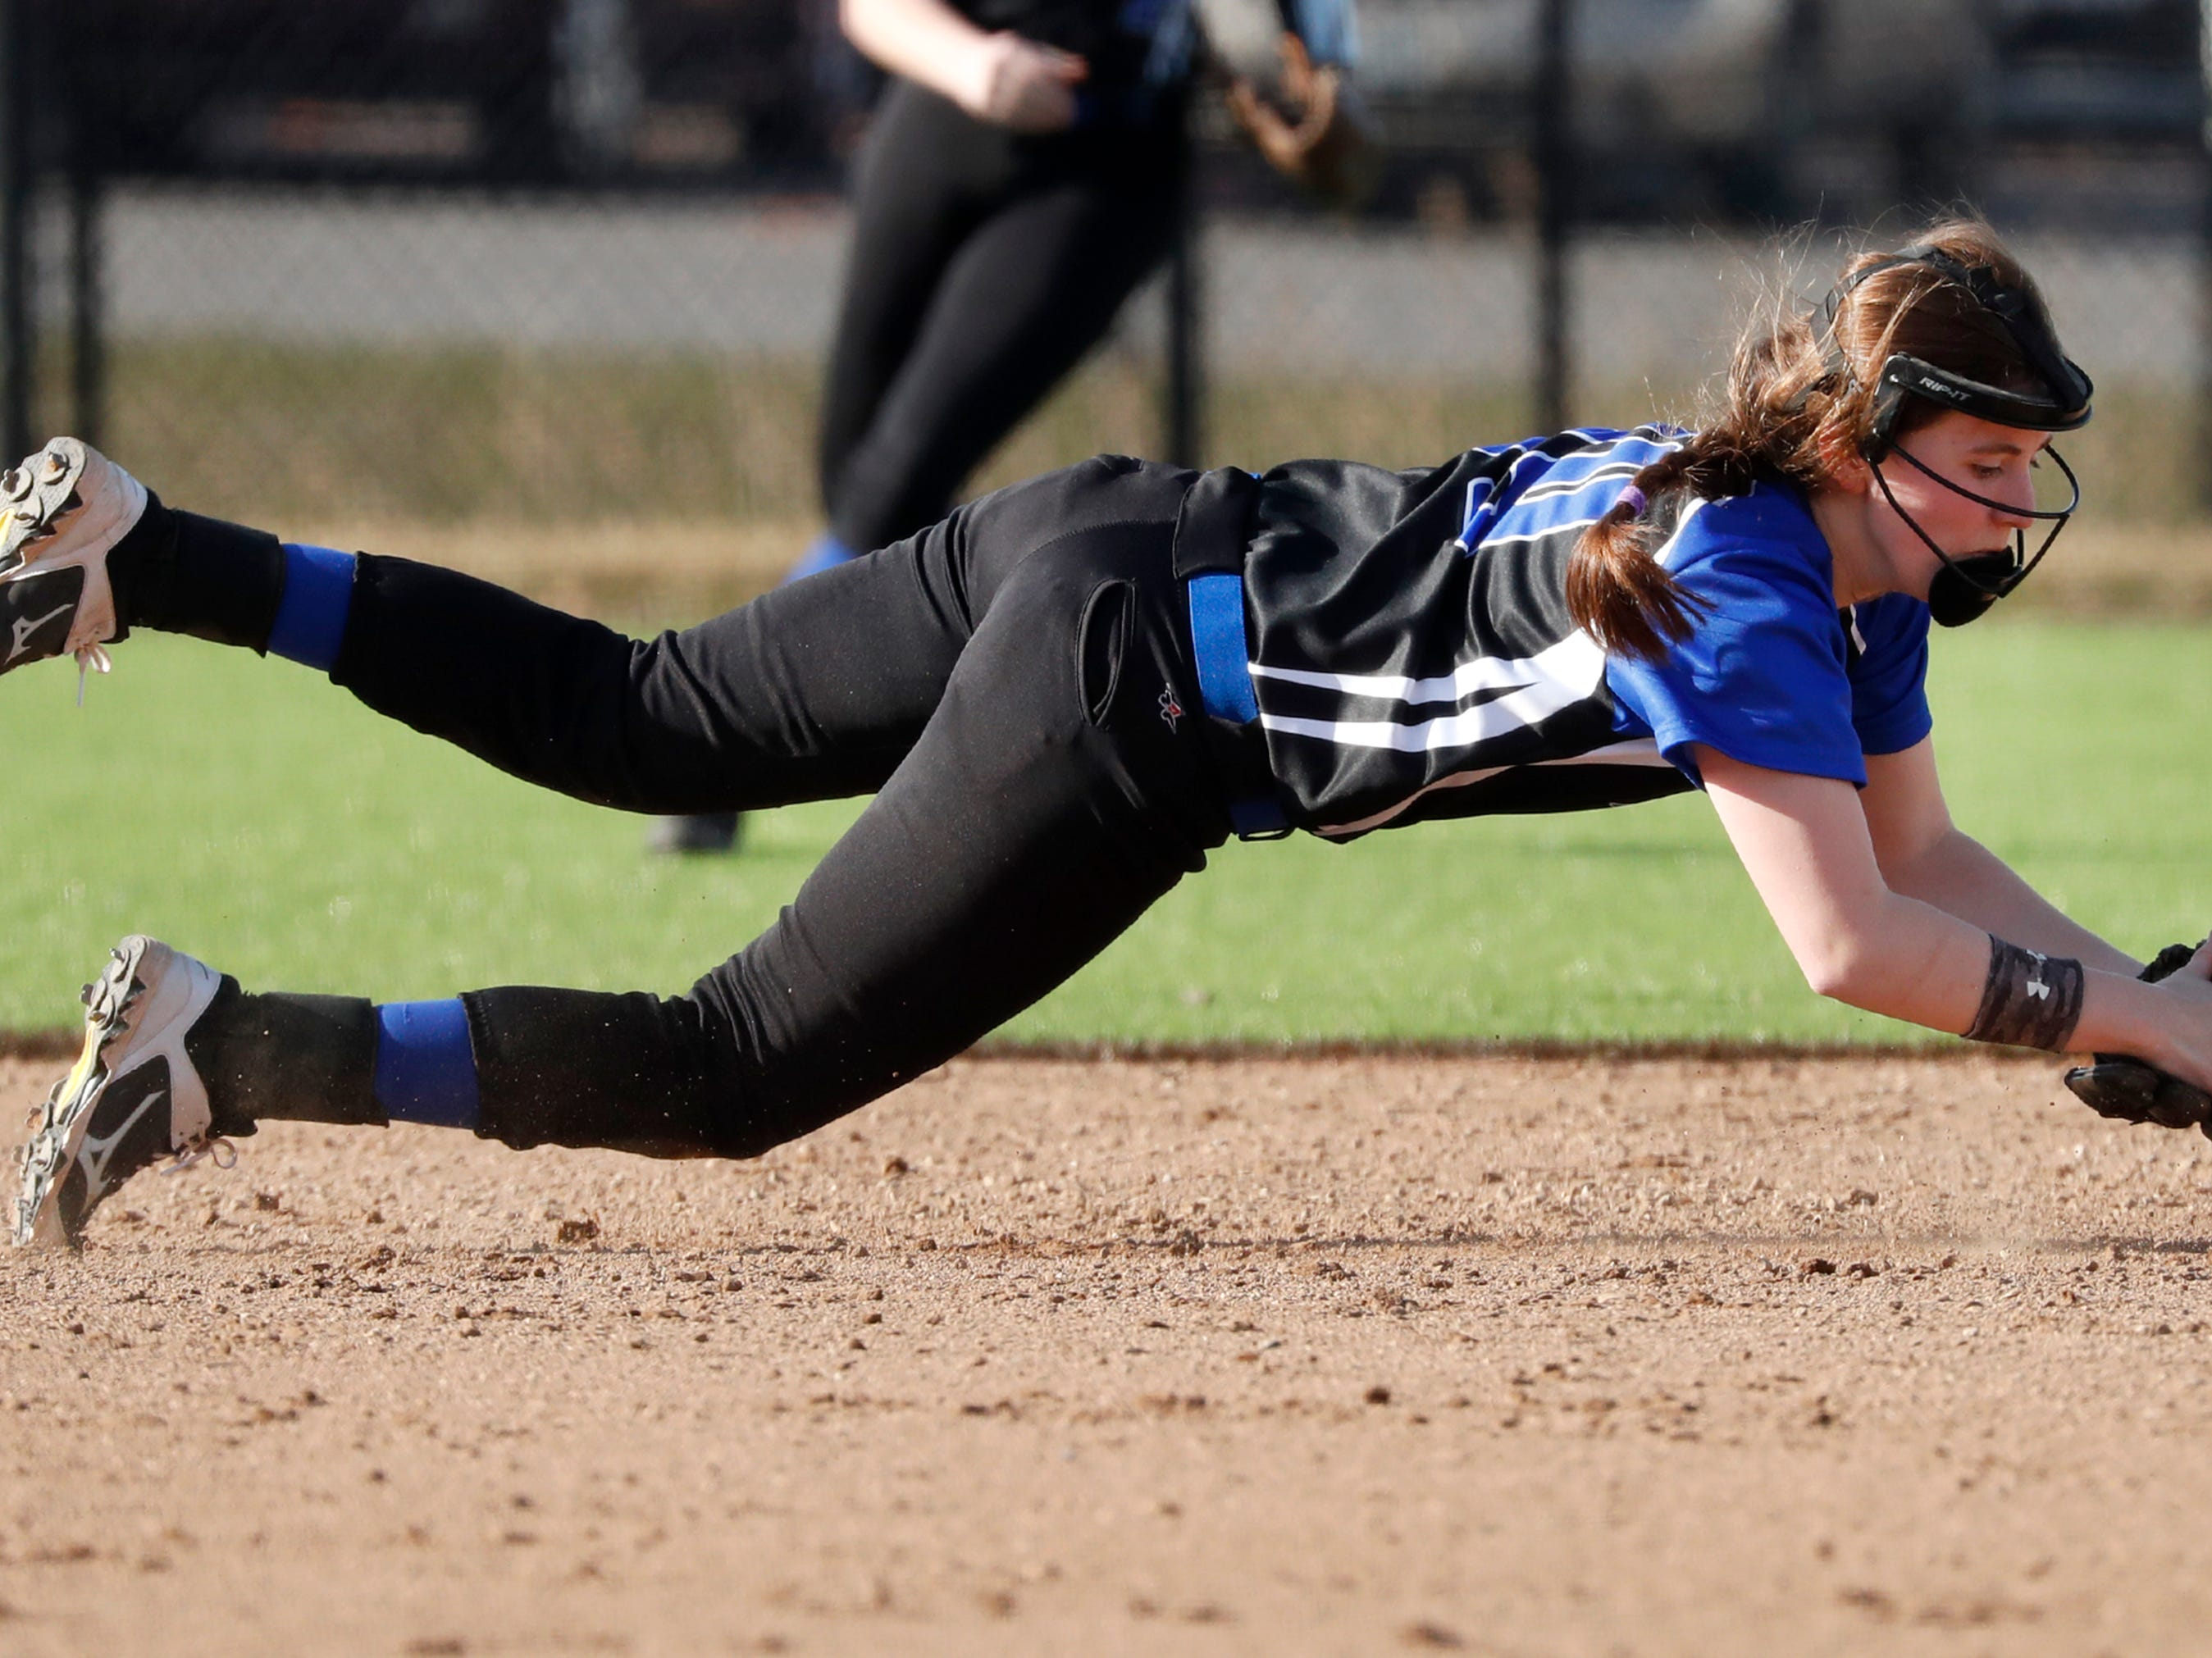 Oshkosh West High School's Olivia Torres catches a ground ball before throwing to first base for an out against Kaukauna High School Tuesday, April 9, 2019, in Kaukauna, Wis. Kaukauna High School defeated Oshkosh West High School 3-1.Danny Damiani/USA TODAY NETWORK-Wisconsin